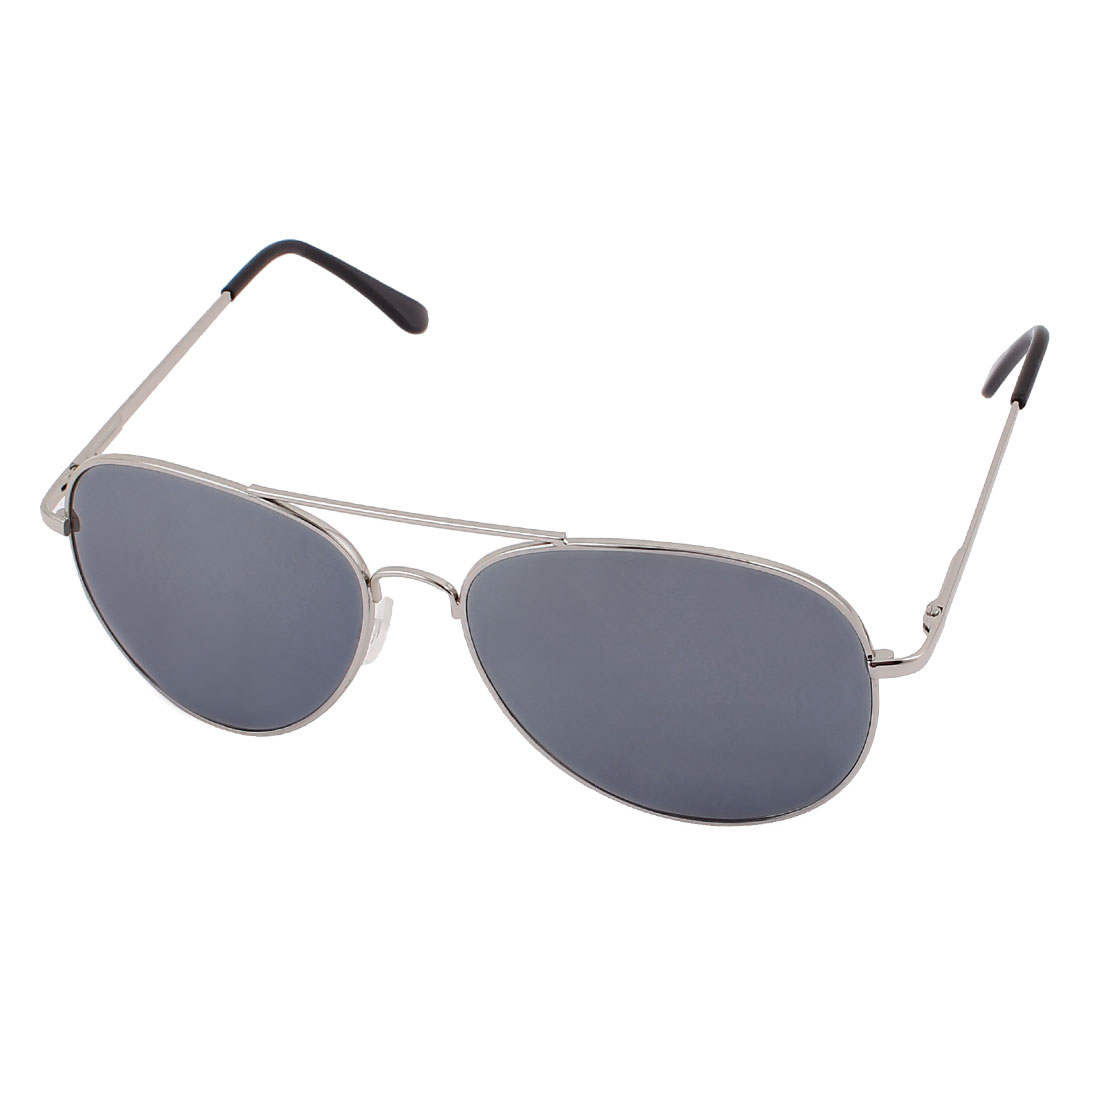 Man Retro Vintage Style Double Bridge Full Frame Silver Tone Mirror Reflective Waterdrop Lens Sunglasses Eyewear